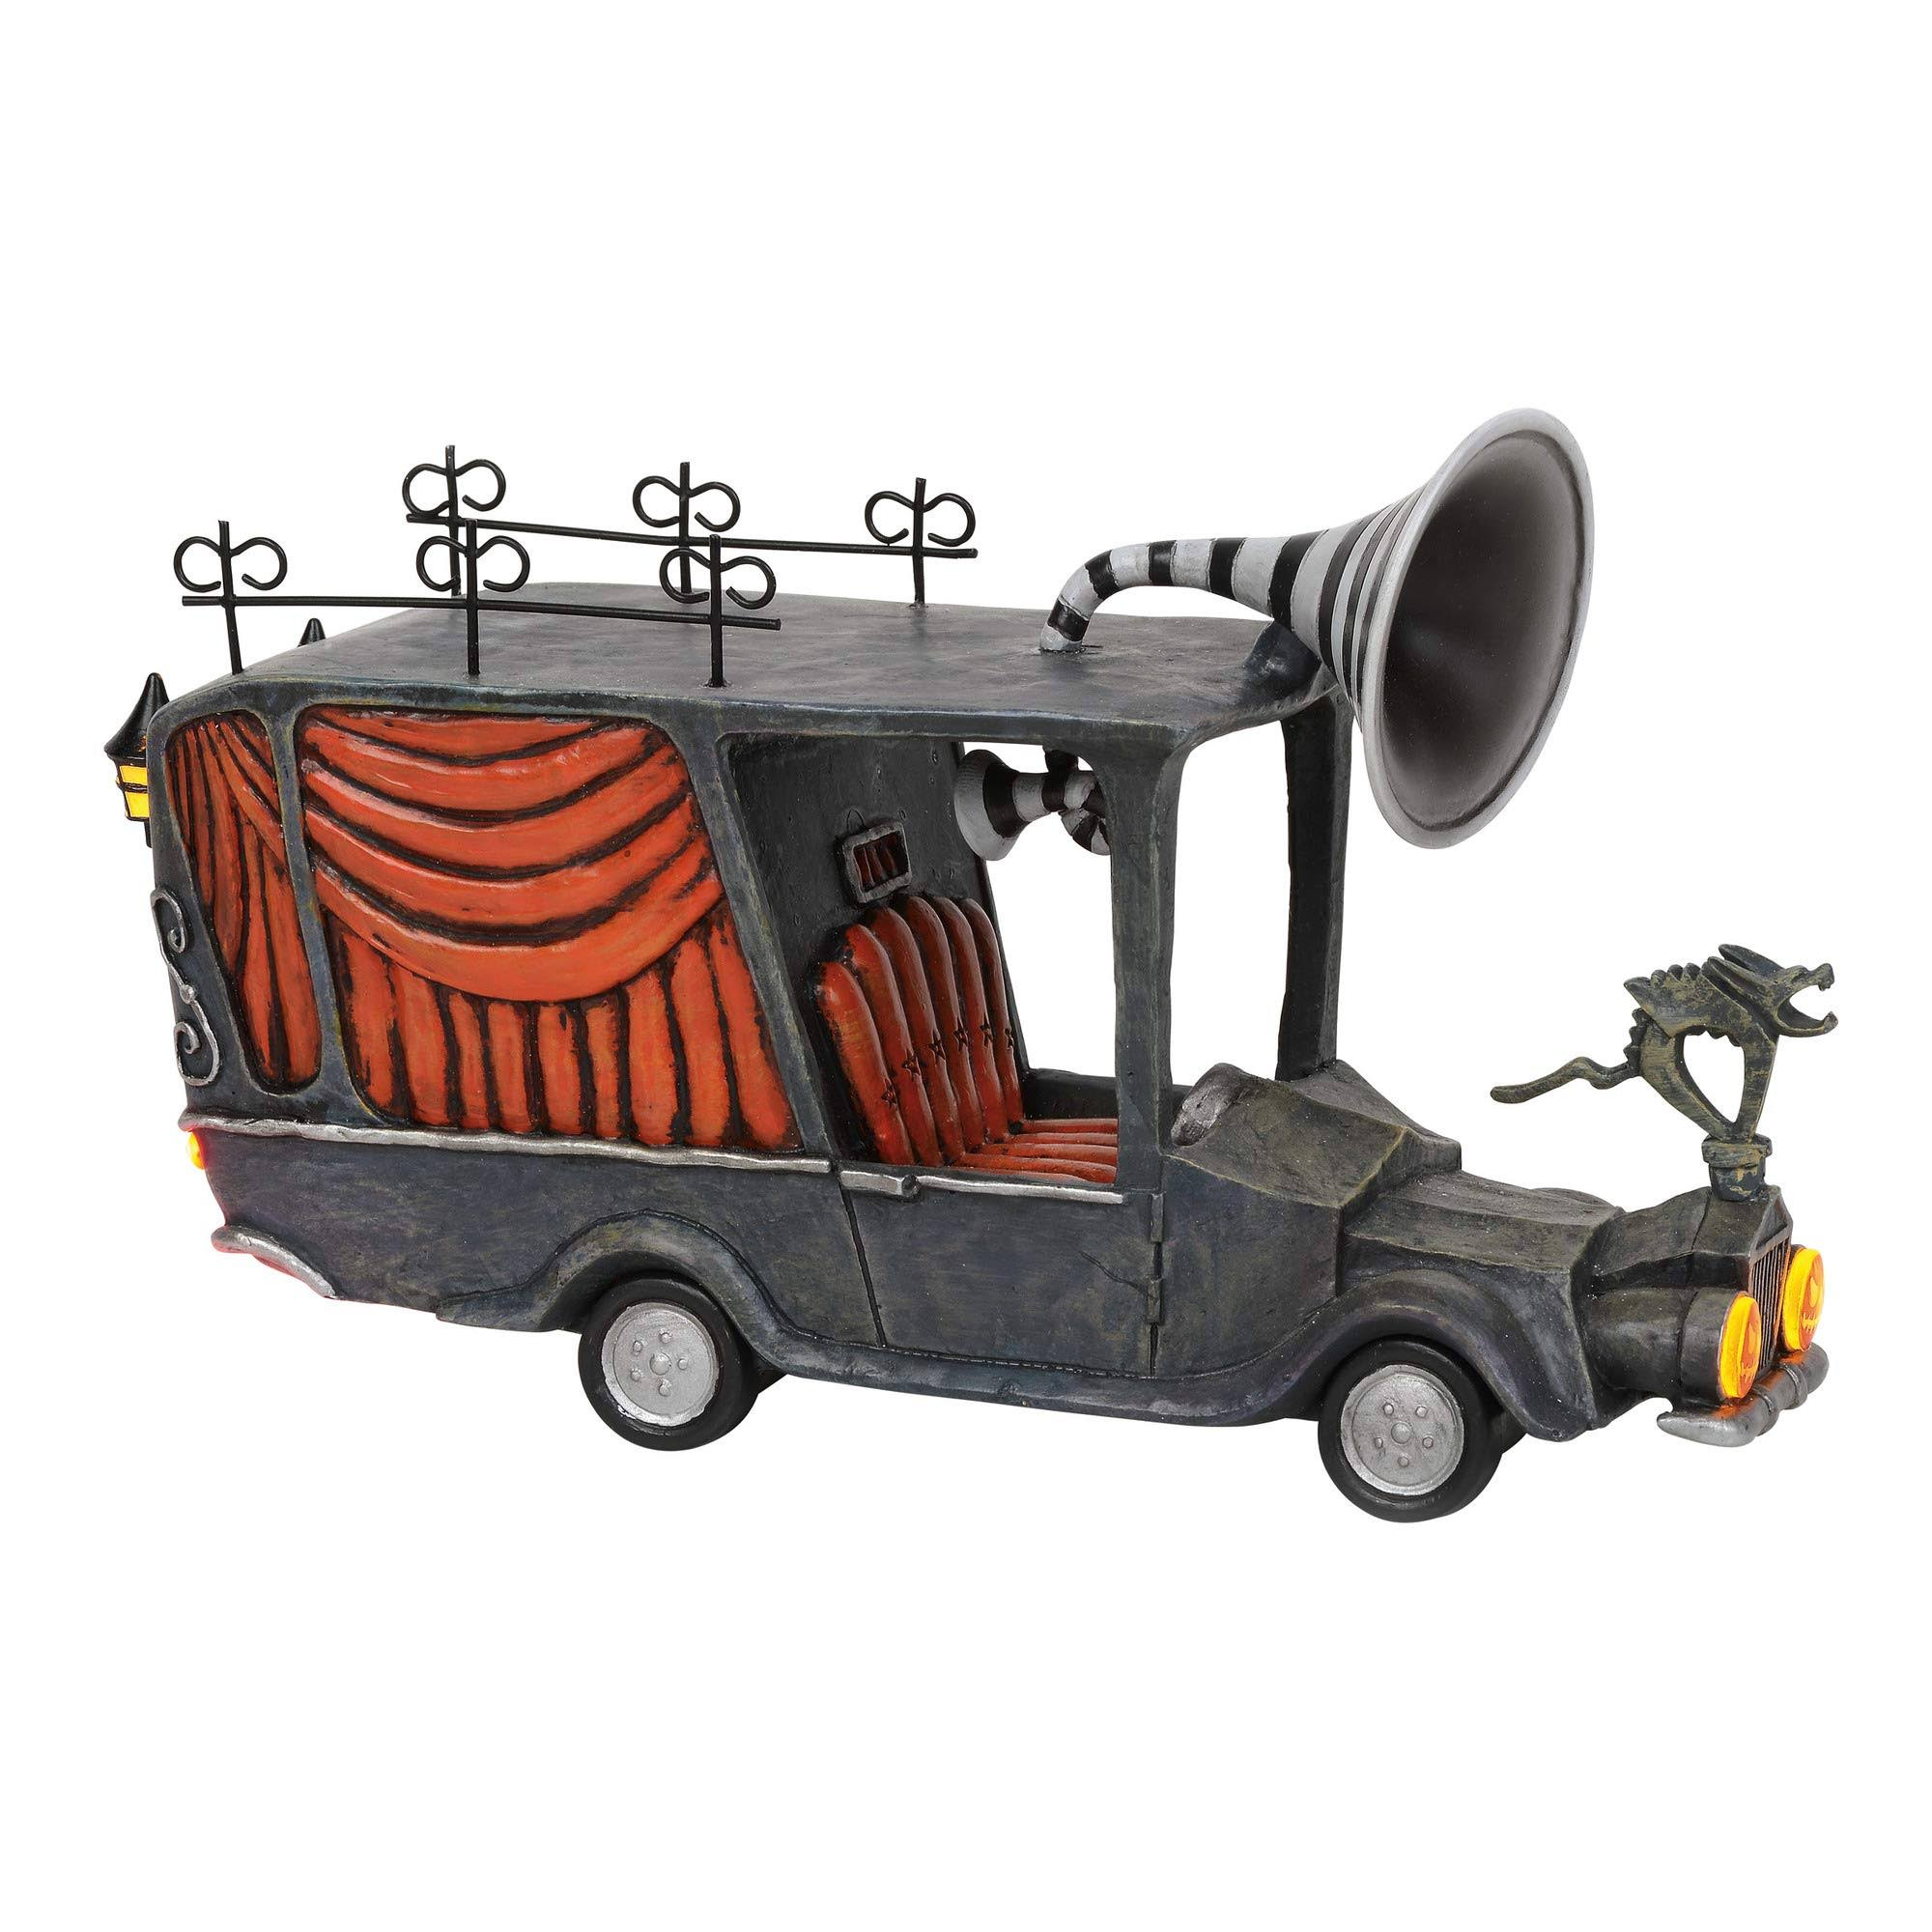 Department 56 Nightmare Before Christmas The Mayor's Car